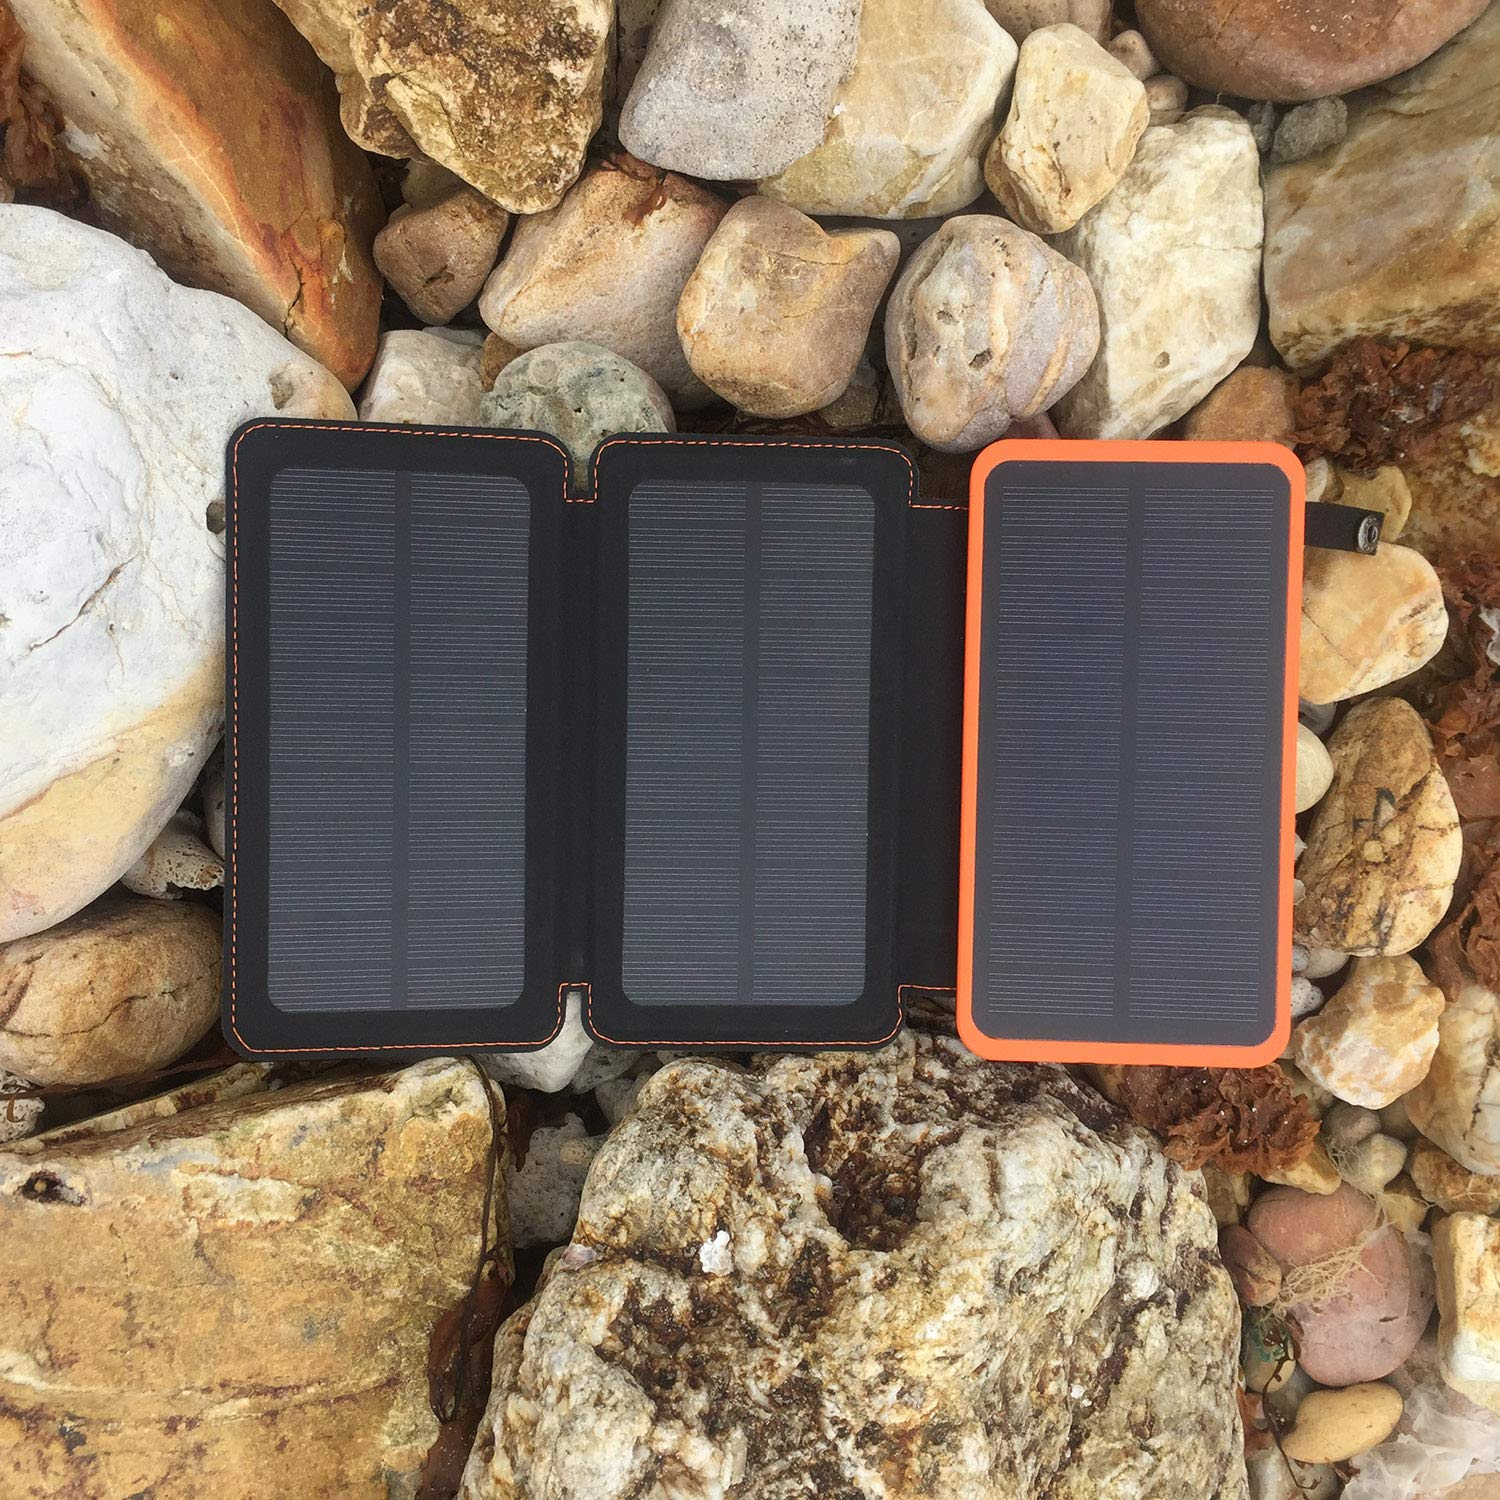 Solar Charger 24000mAh,Solar Power Bank Waterproof Dual USB Output with 3 Solar Panels External Battery Bank with Flashlight for iPhone,Samsung,iPad and Outdoor Camping(Orange) by WBPINE (Image #6)